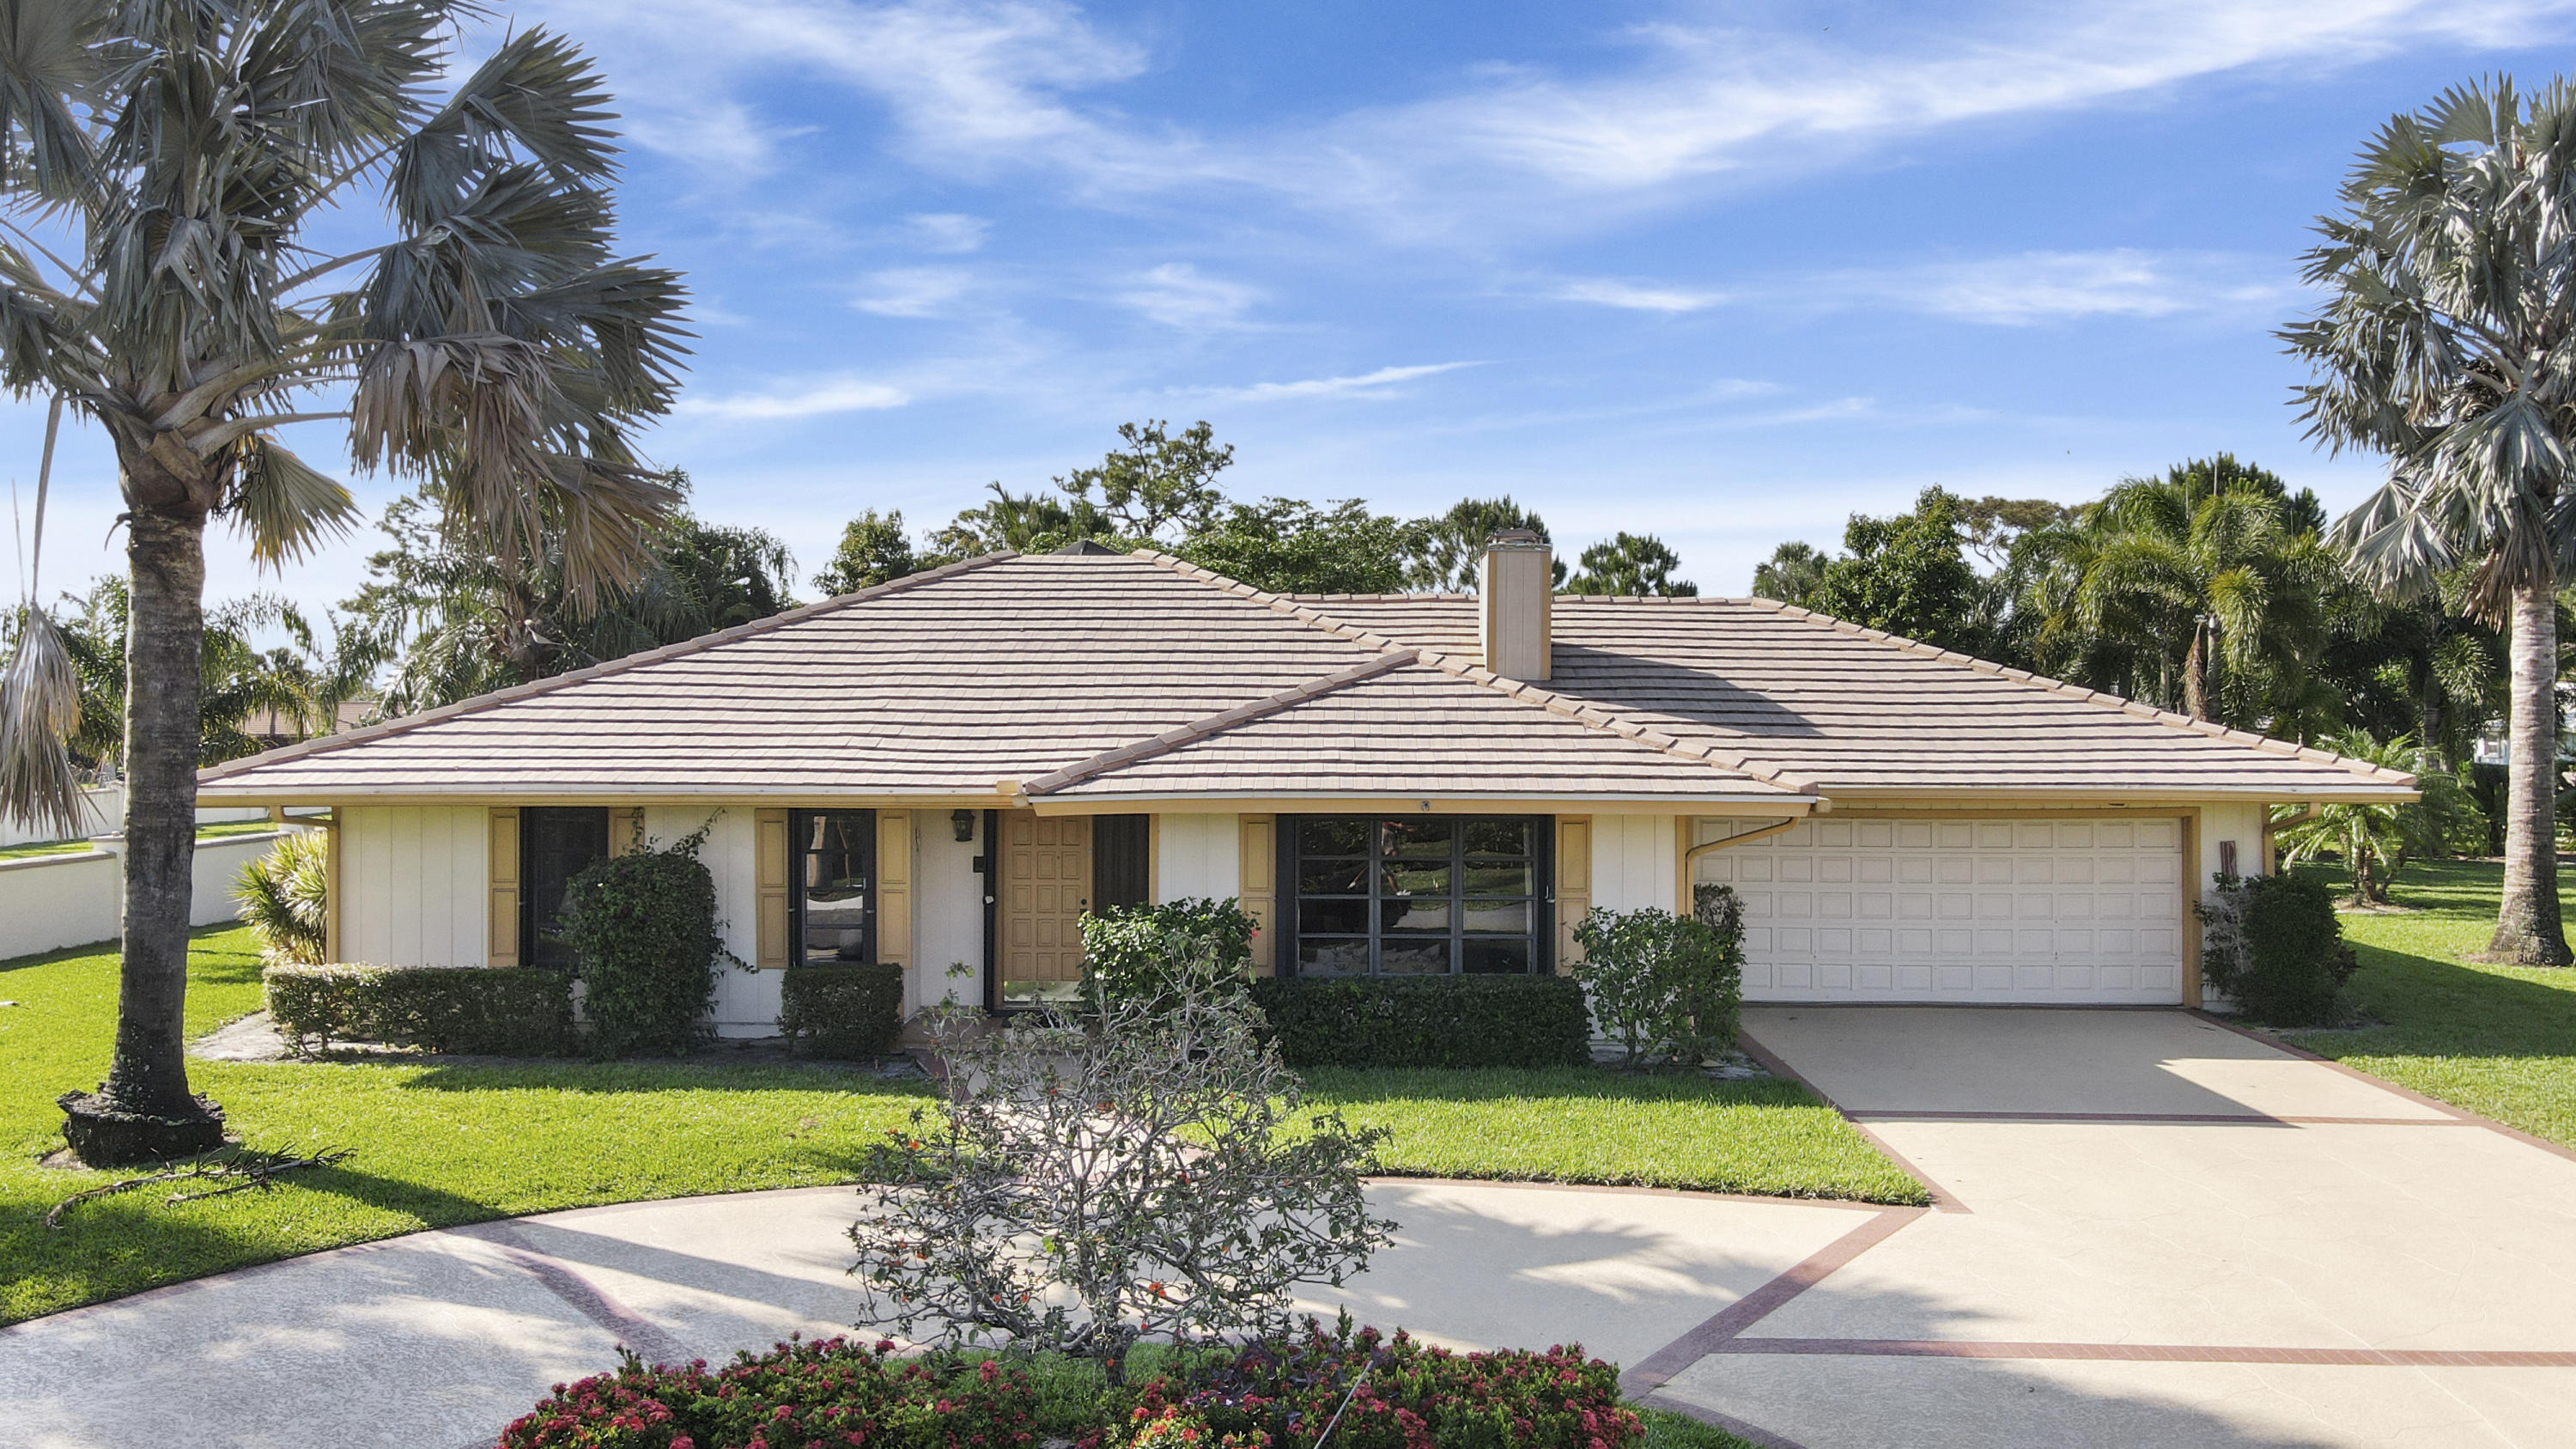 Home for sale in SOUNDINGS Hobe Sound Florida